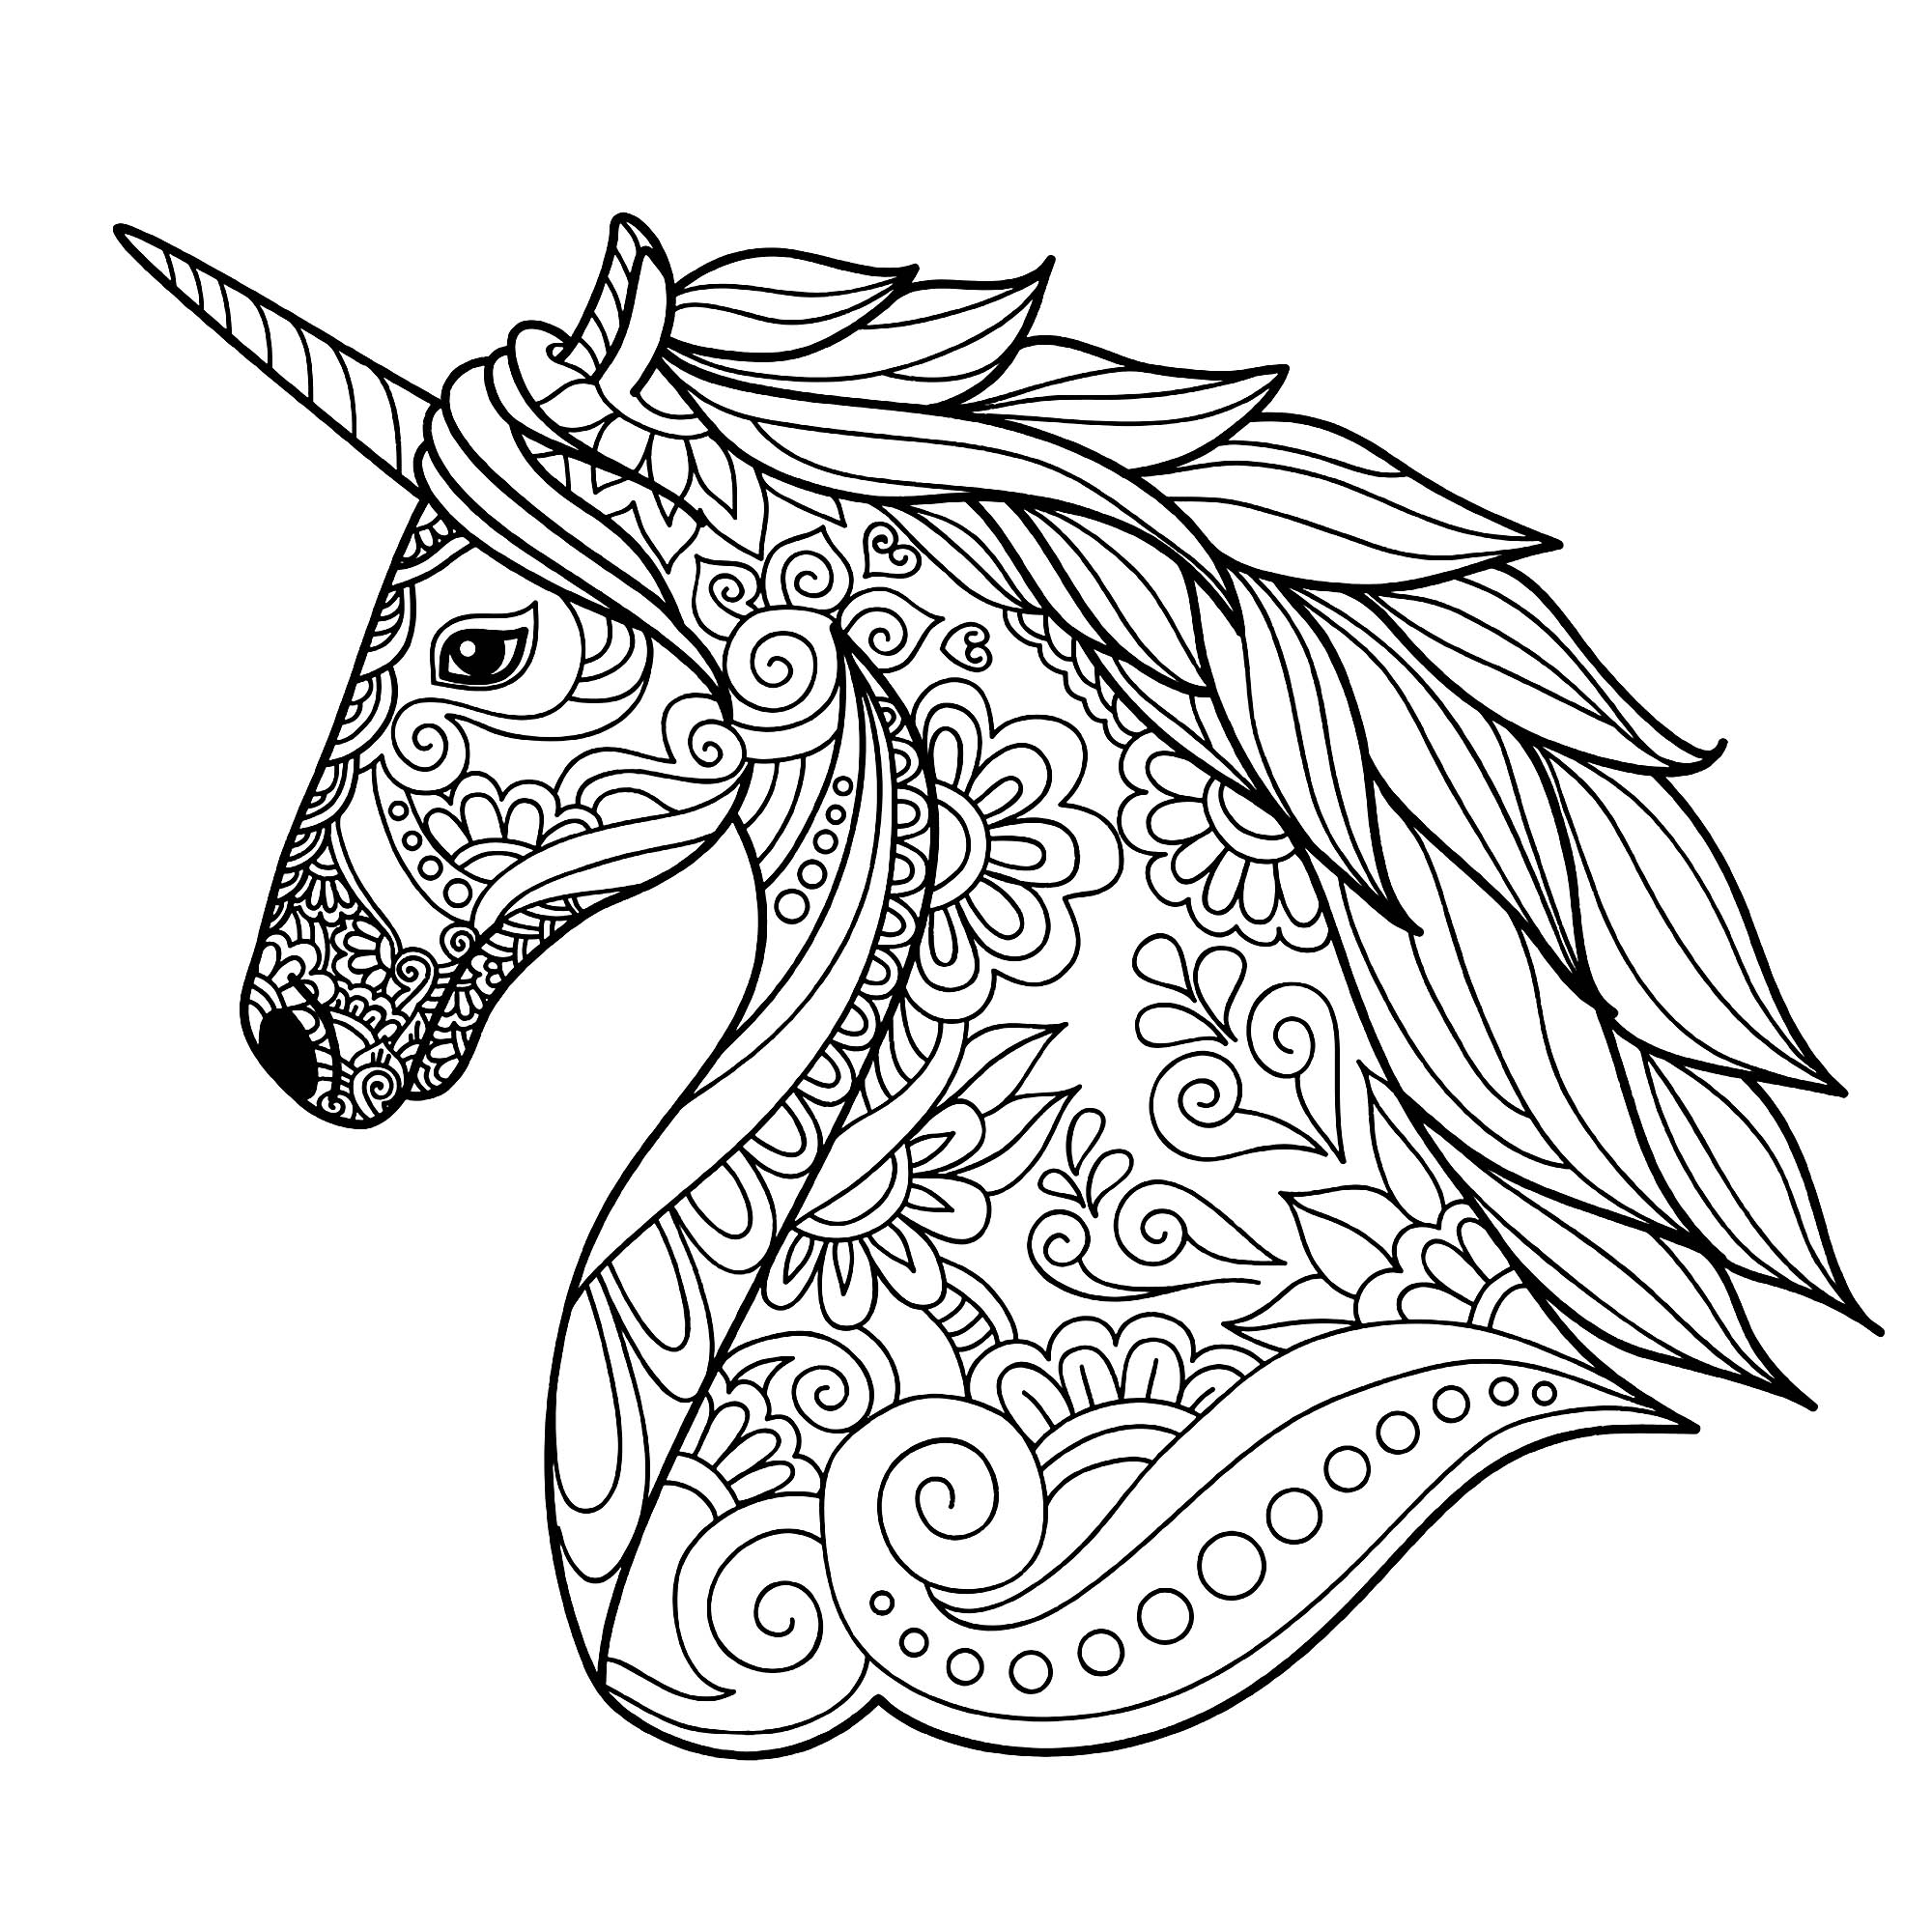 coloring unicorn kids drawing unicorn head simple unicorns adult coloring pages coloring kids unicorn drawing